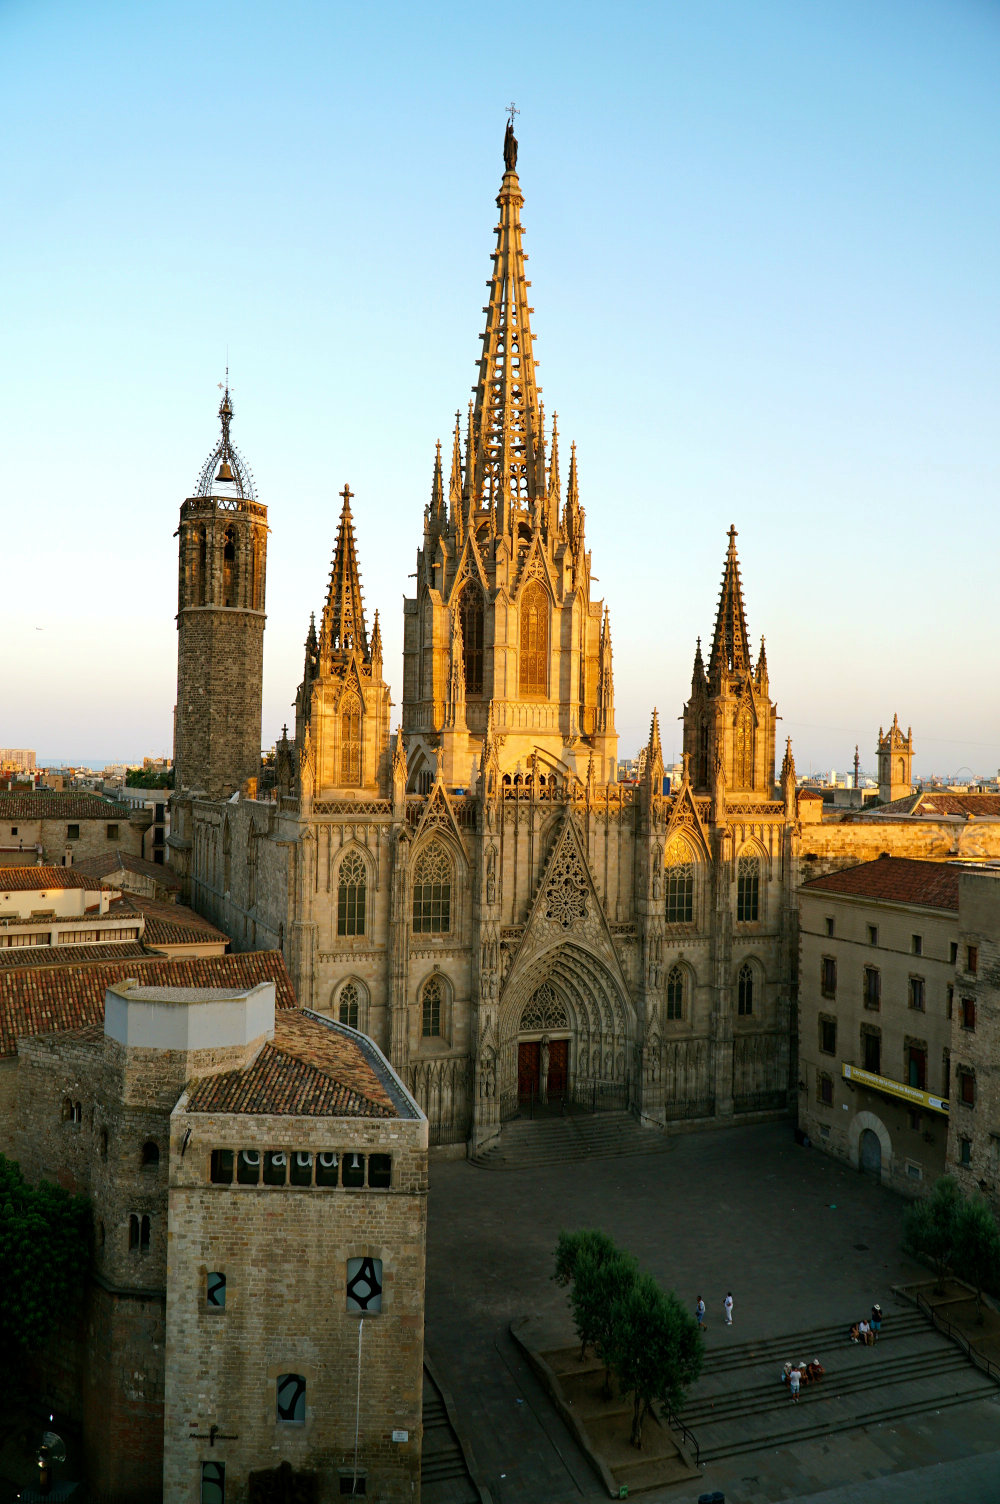 Sunset hour at the Barcelona Cathedral in the Gothic Quarter.